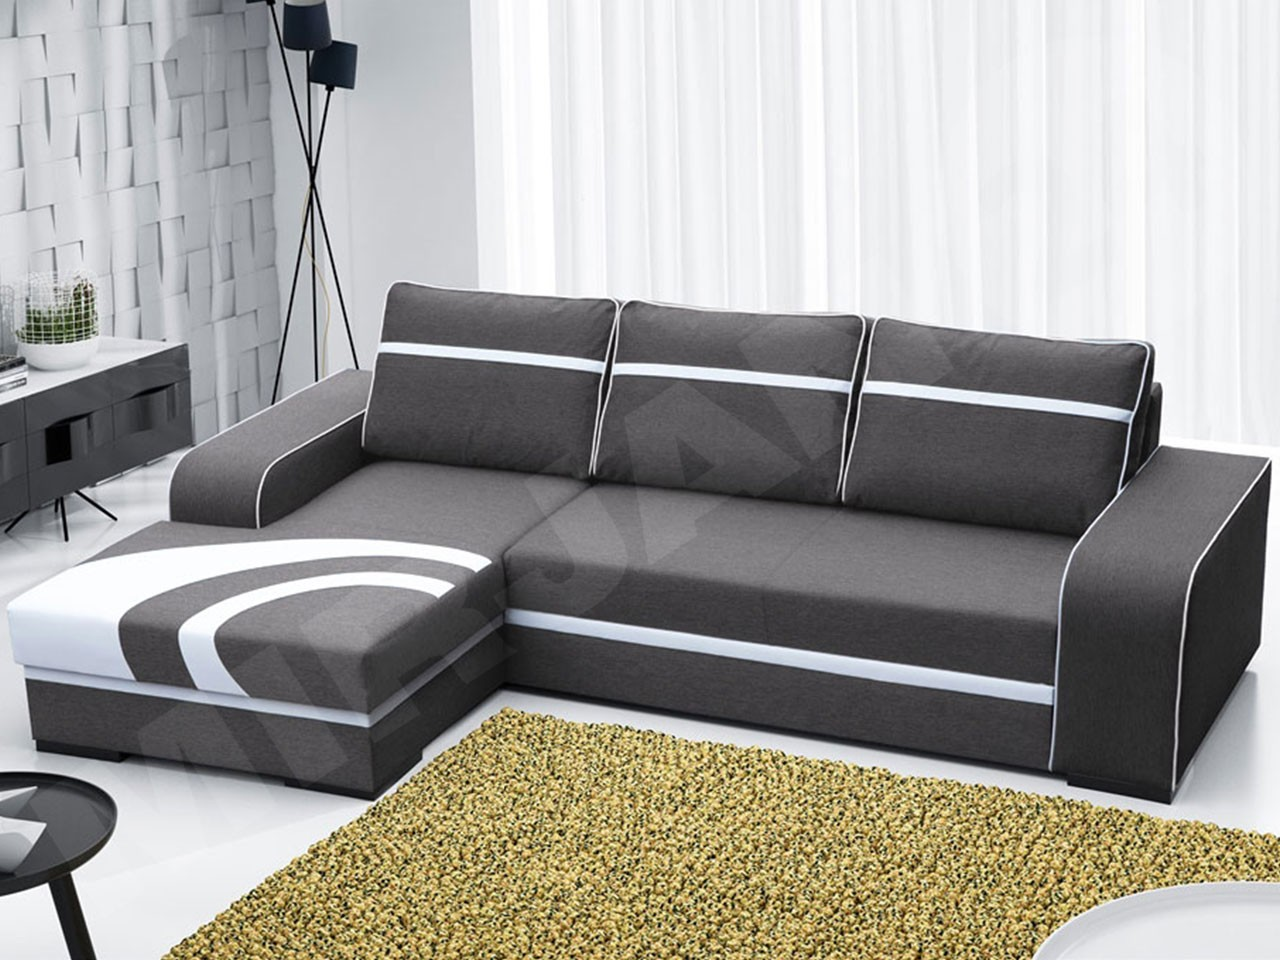 ecksofa reslo mit schlaffunktion und bettkasten mirjan24. Black Bedroom Furniture Sets. Home Design Ideas